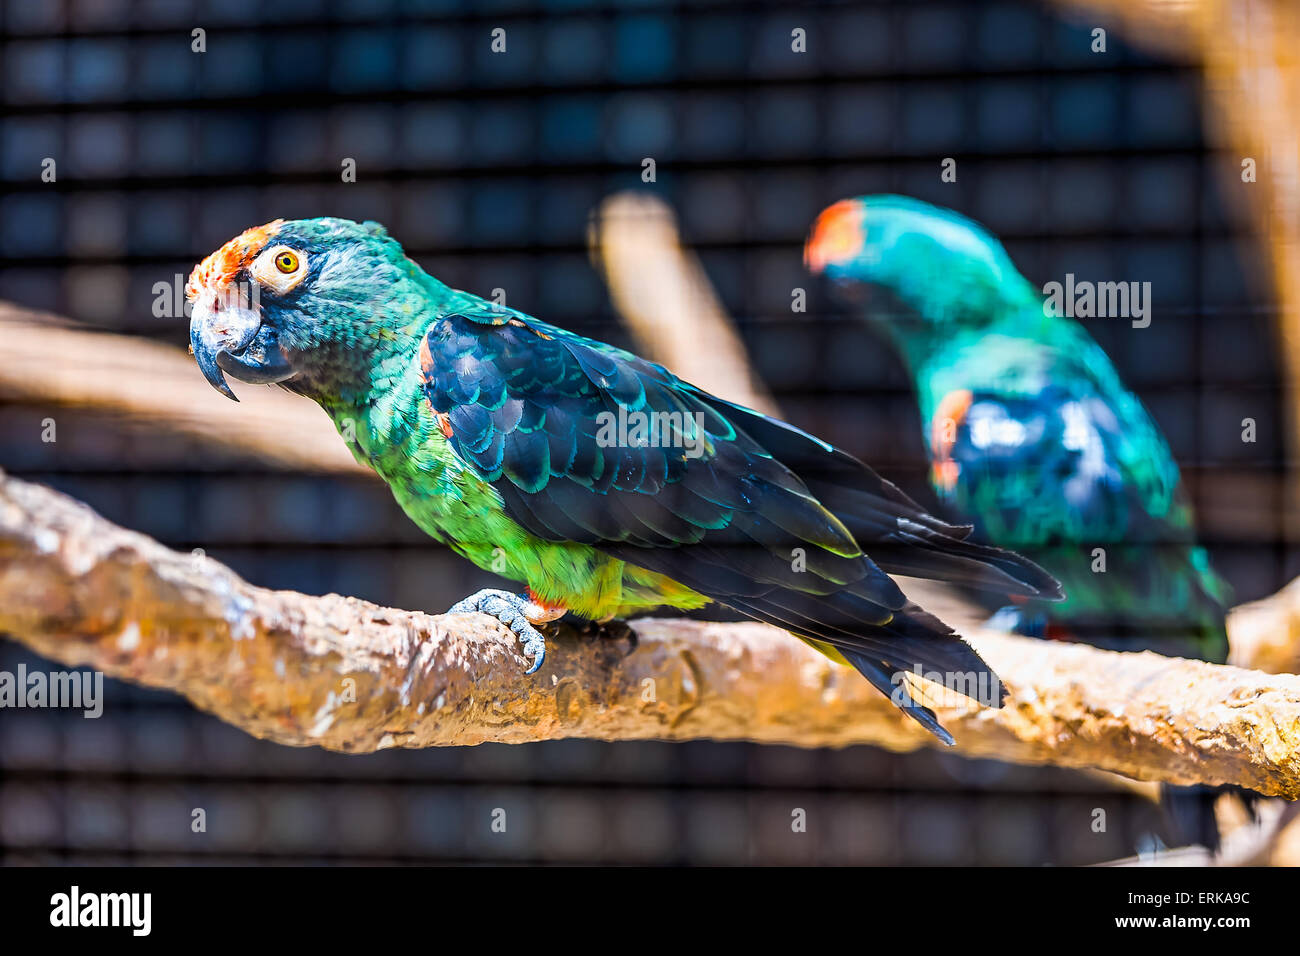 Blue and green parrot siting on wooden perch in zoo - Stock Image